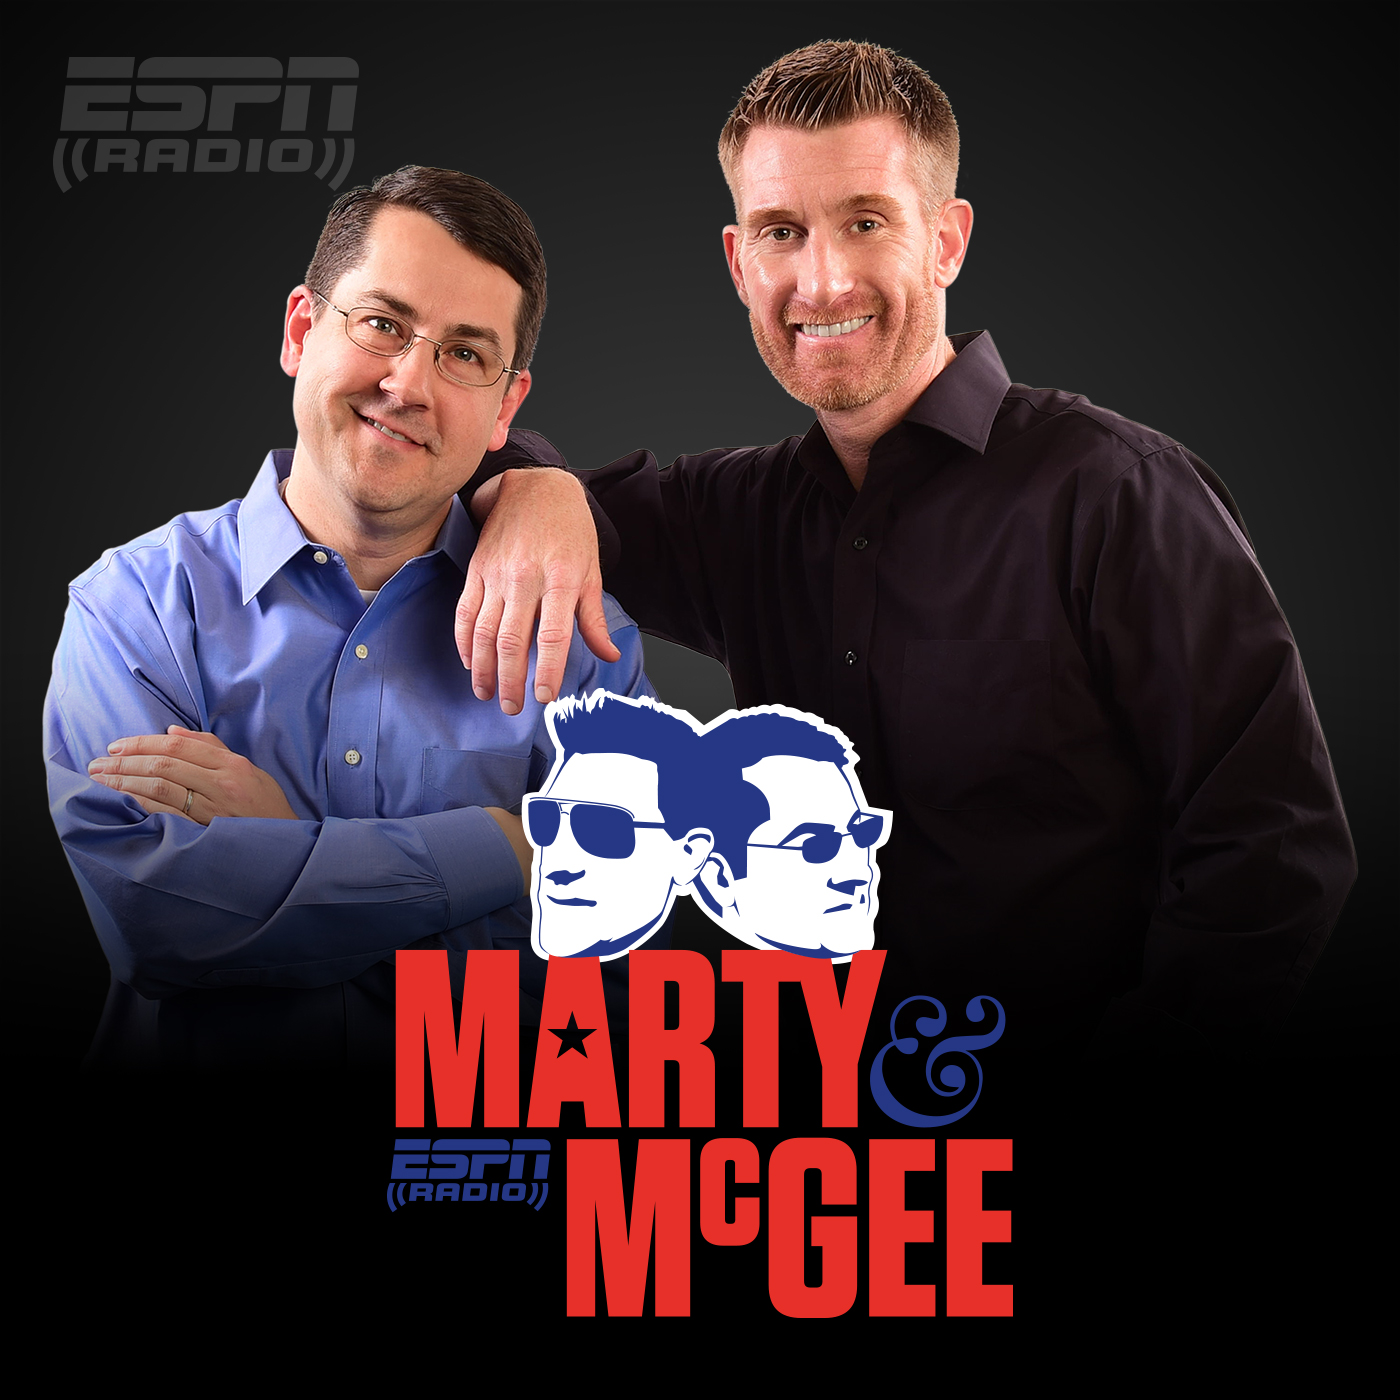 Marty and McGee